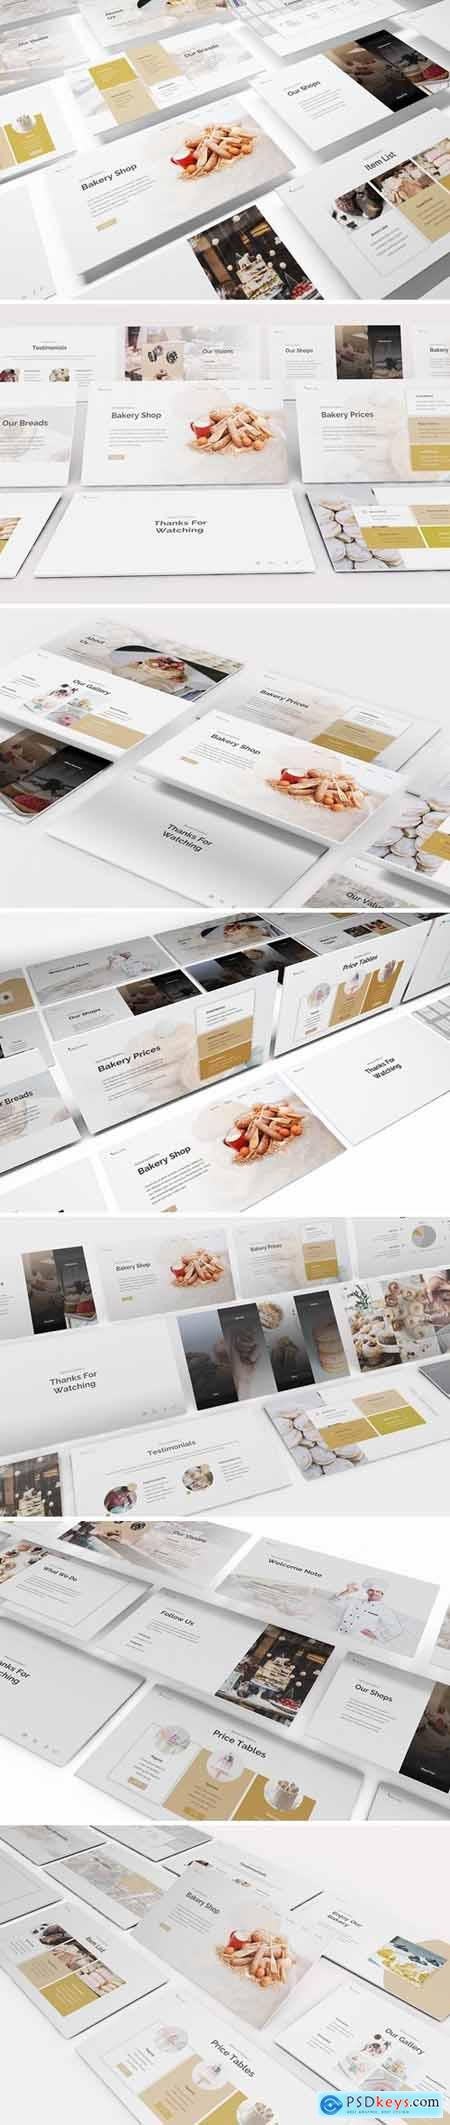 Bakery Powerpoint, Keynote and Google Slides Templates